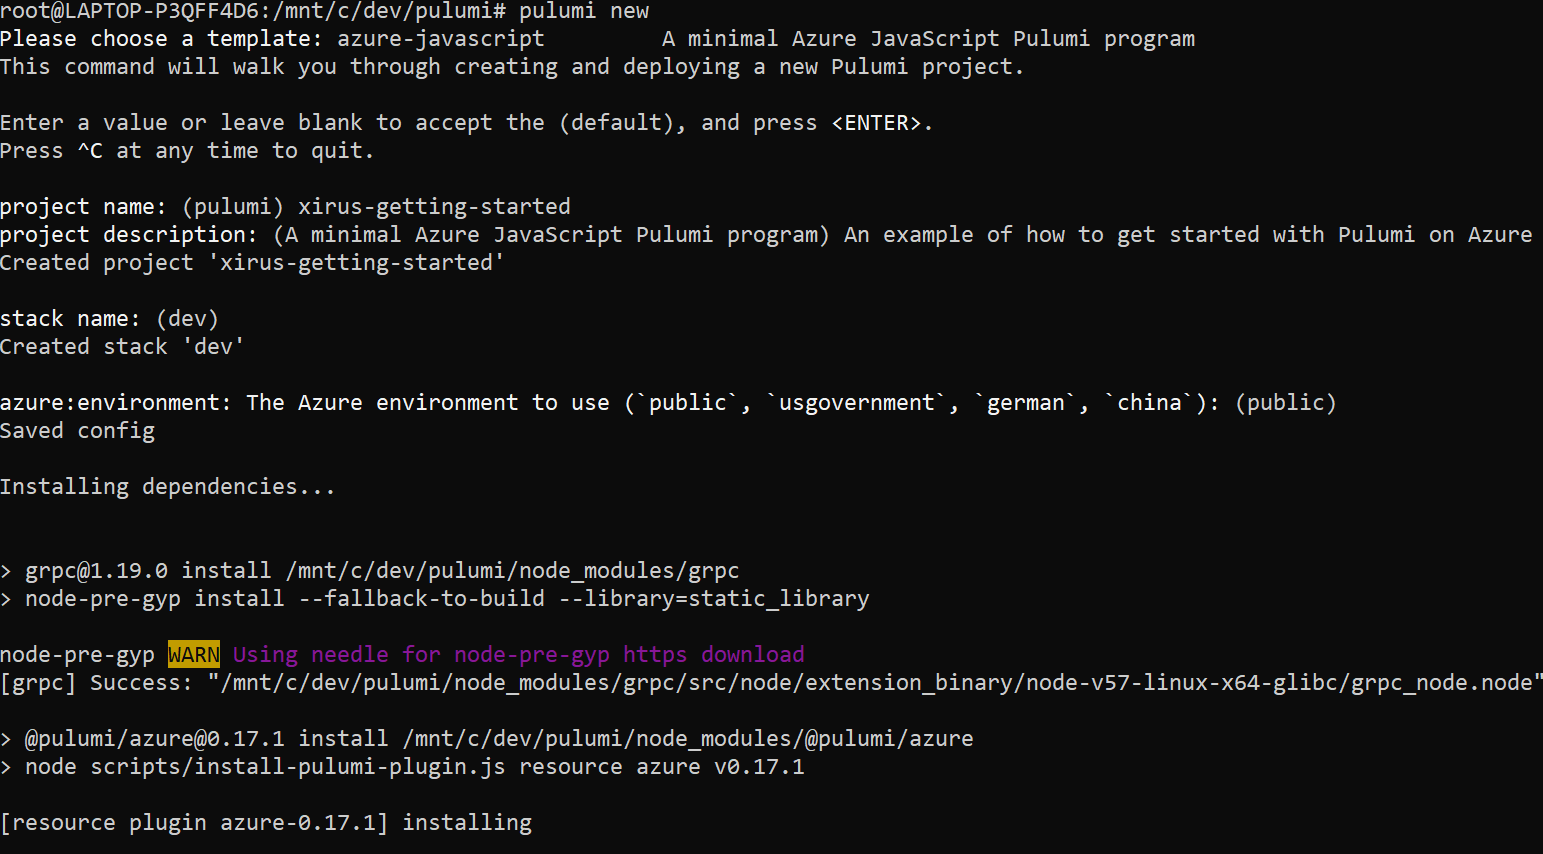 Getting started with Pulumi on Azure - Cloud for the win!